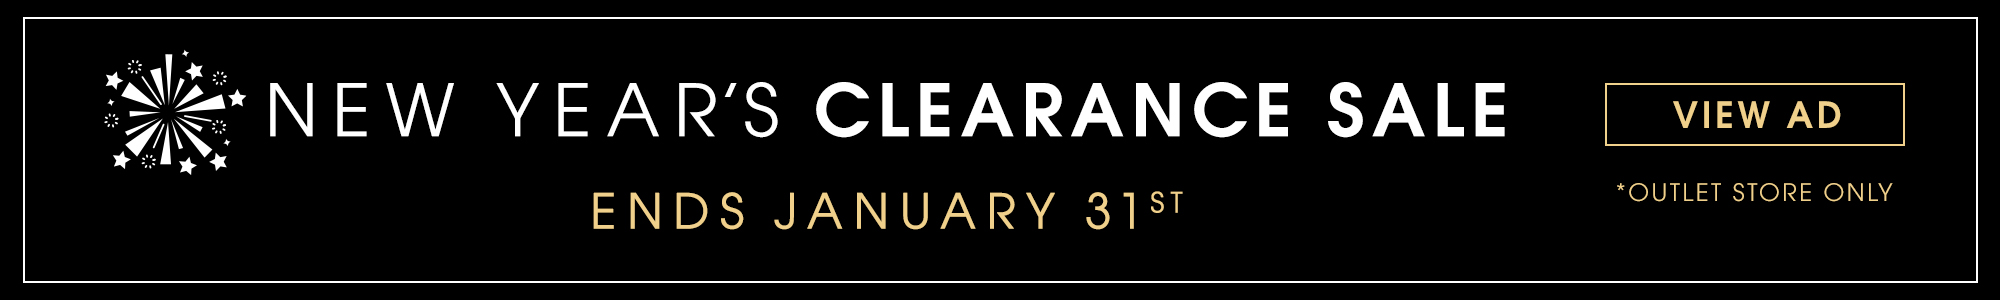 New Years Clearance Sale